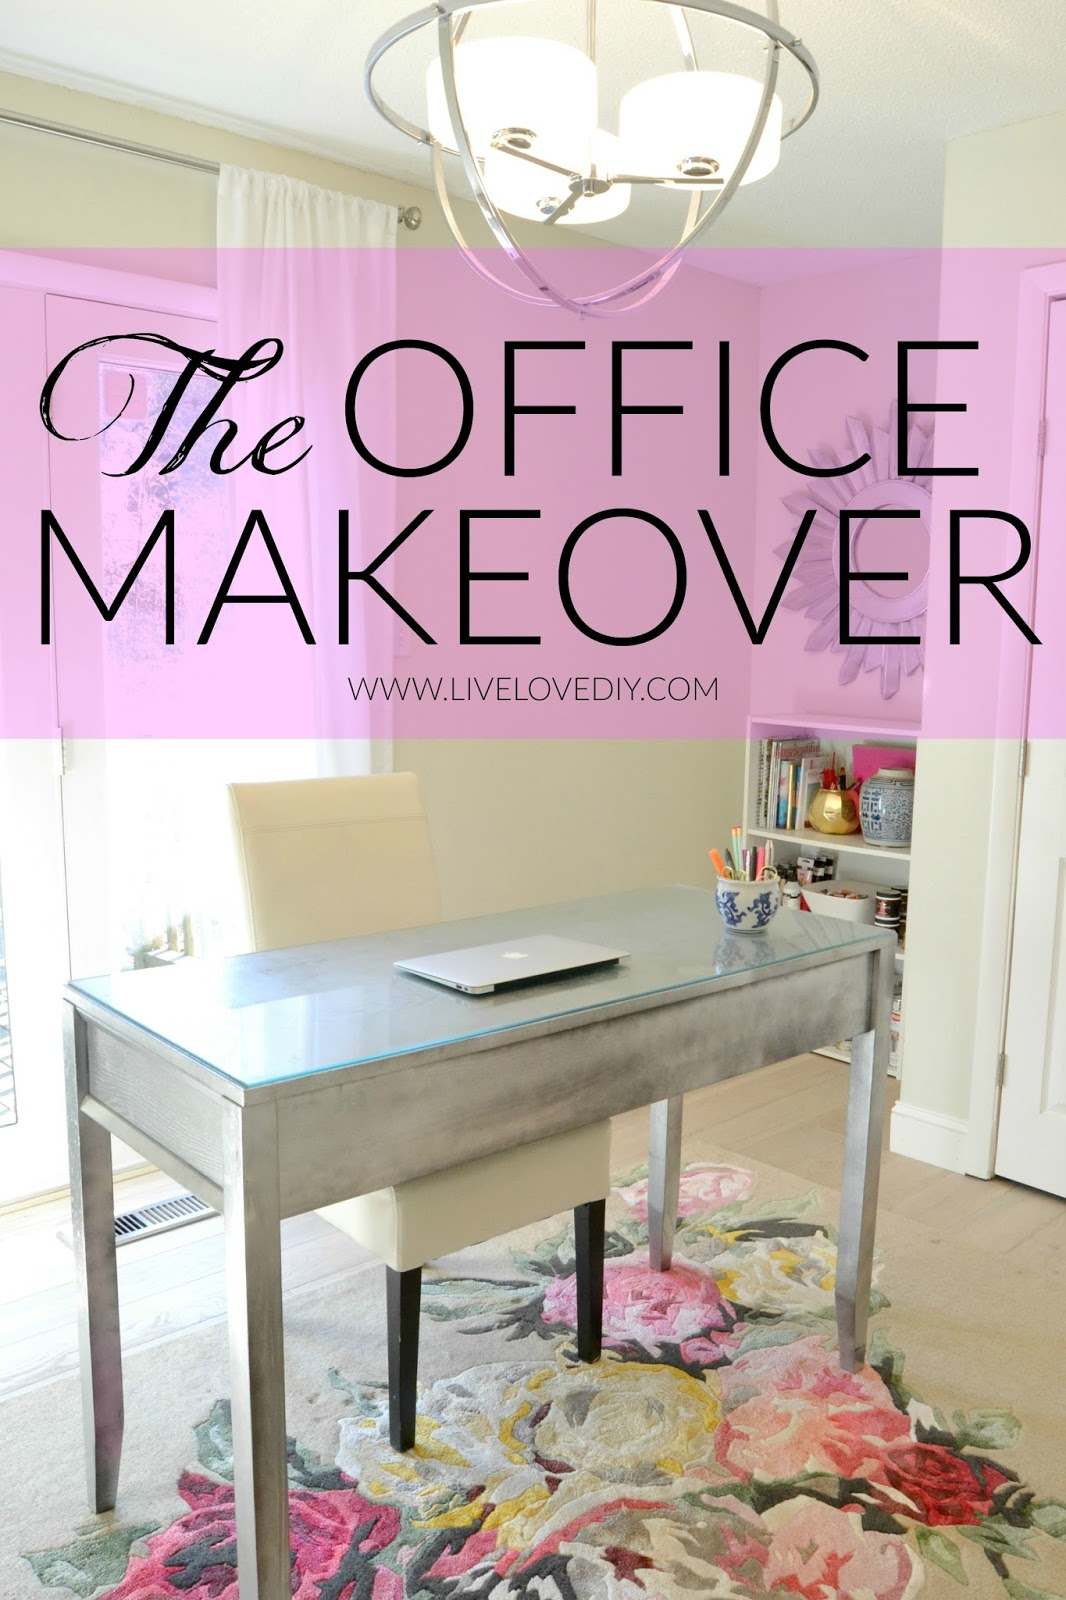 LiveLoveDIY: Home Office Decorating Ideas: My Latest ...